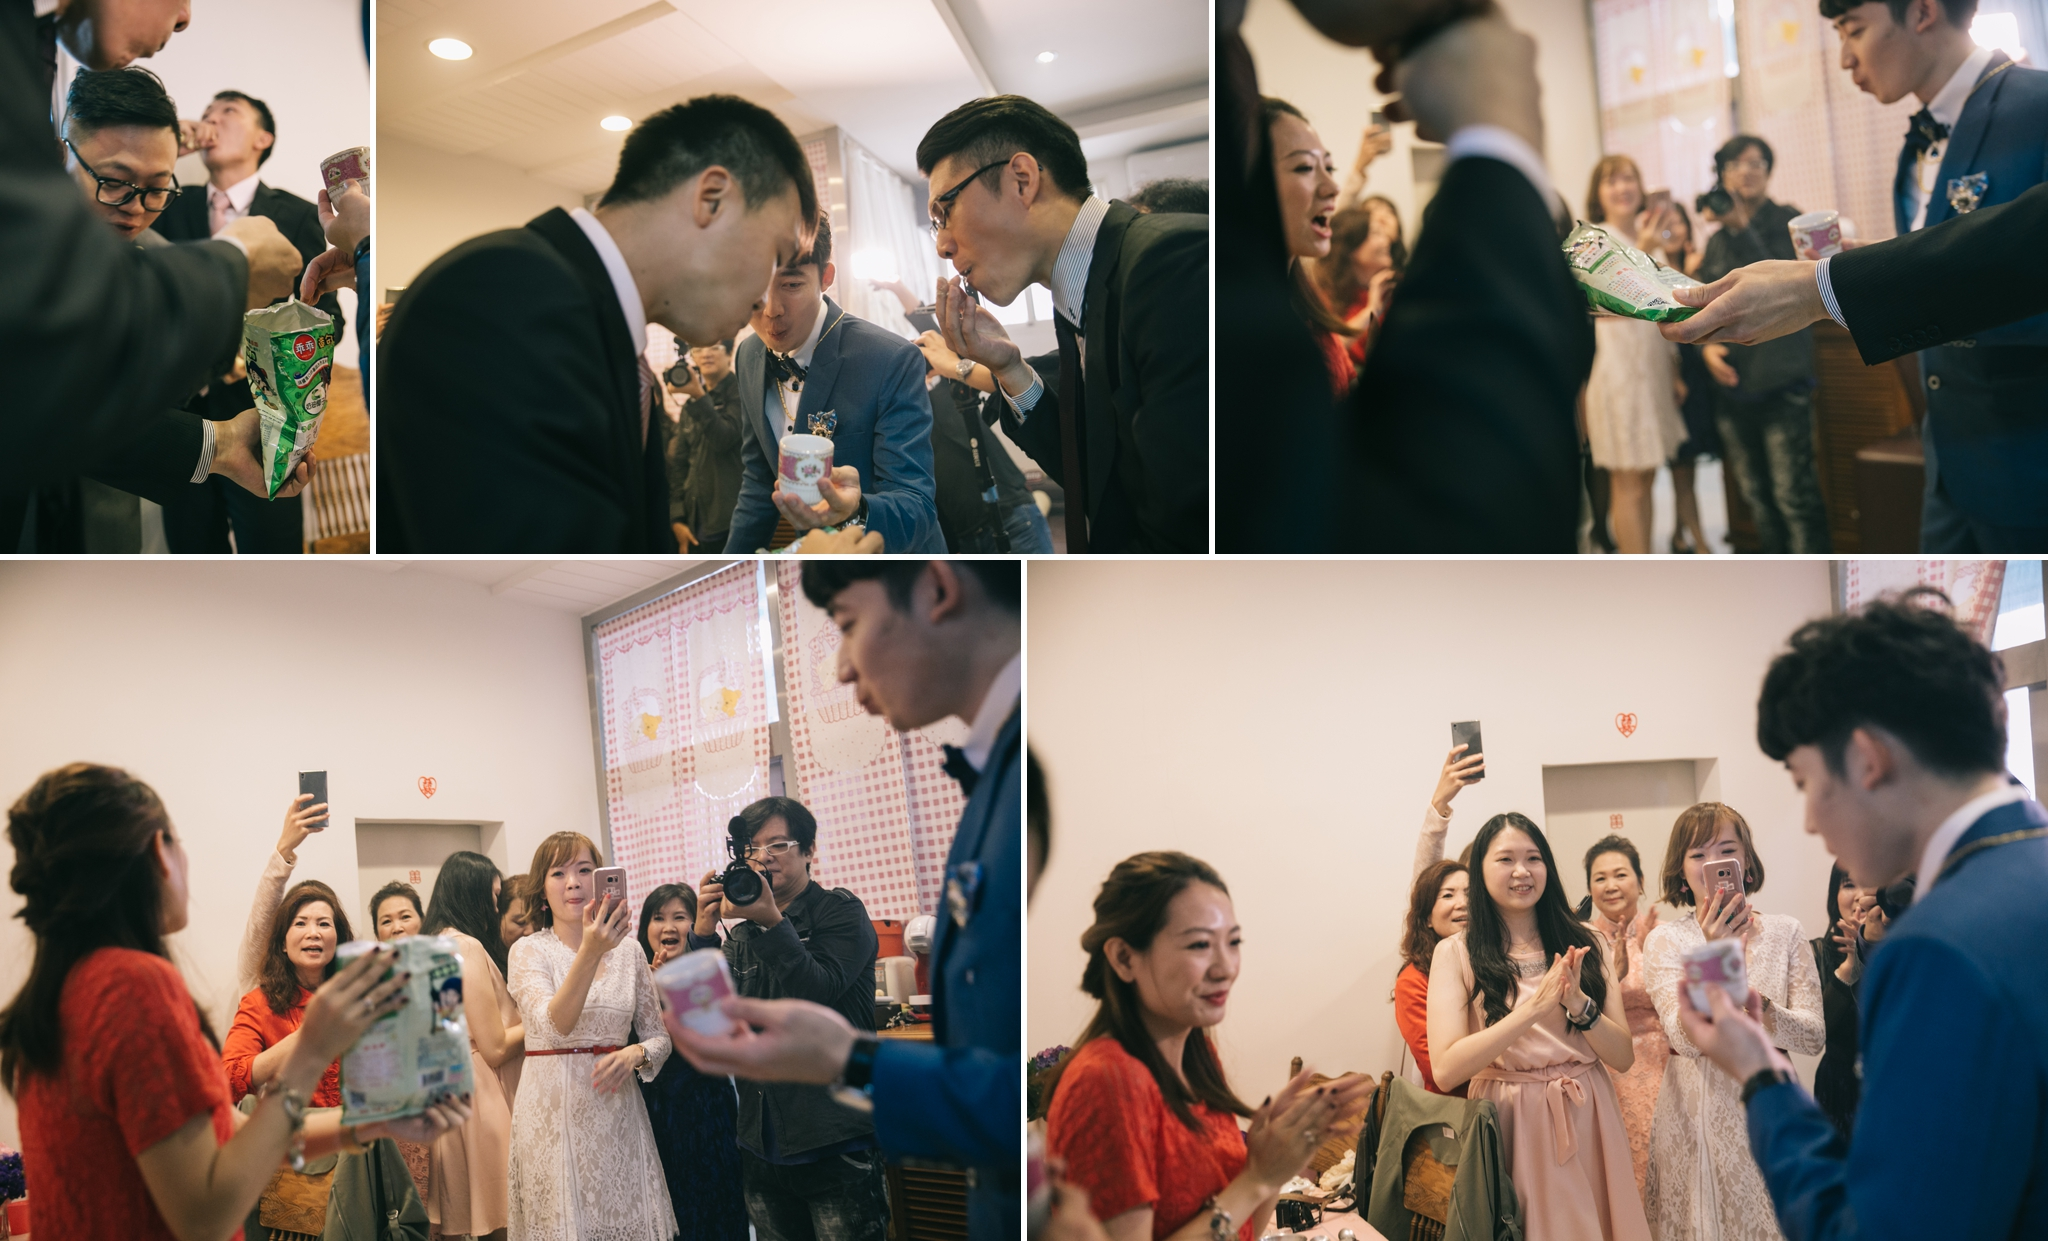 Keddy+Richard-wedding-新莊頤品飯店-078.jpg